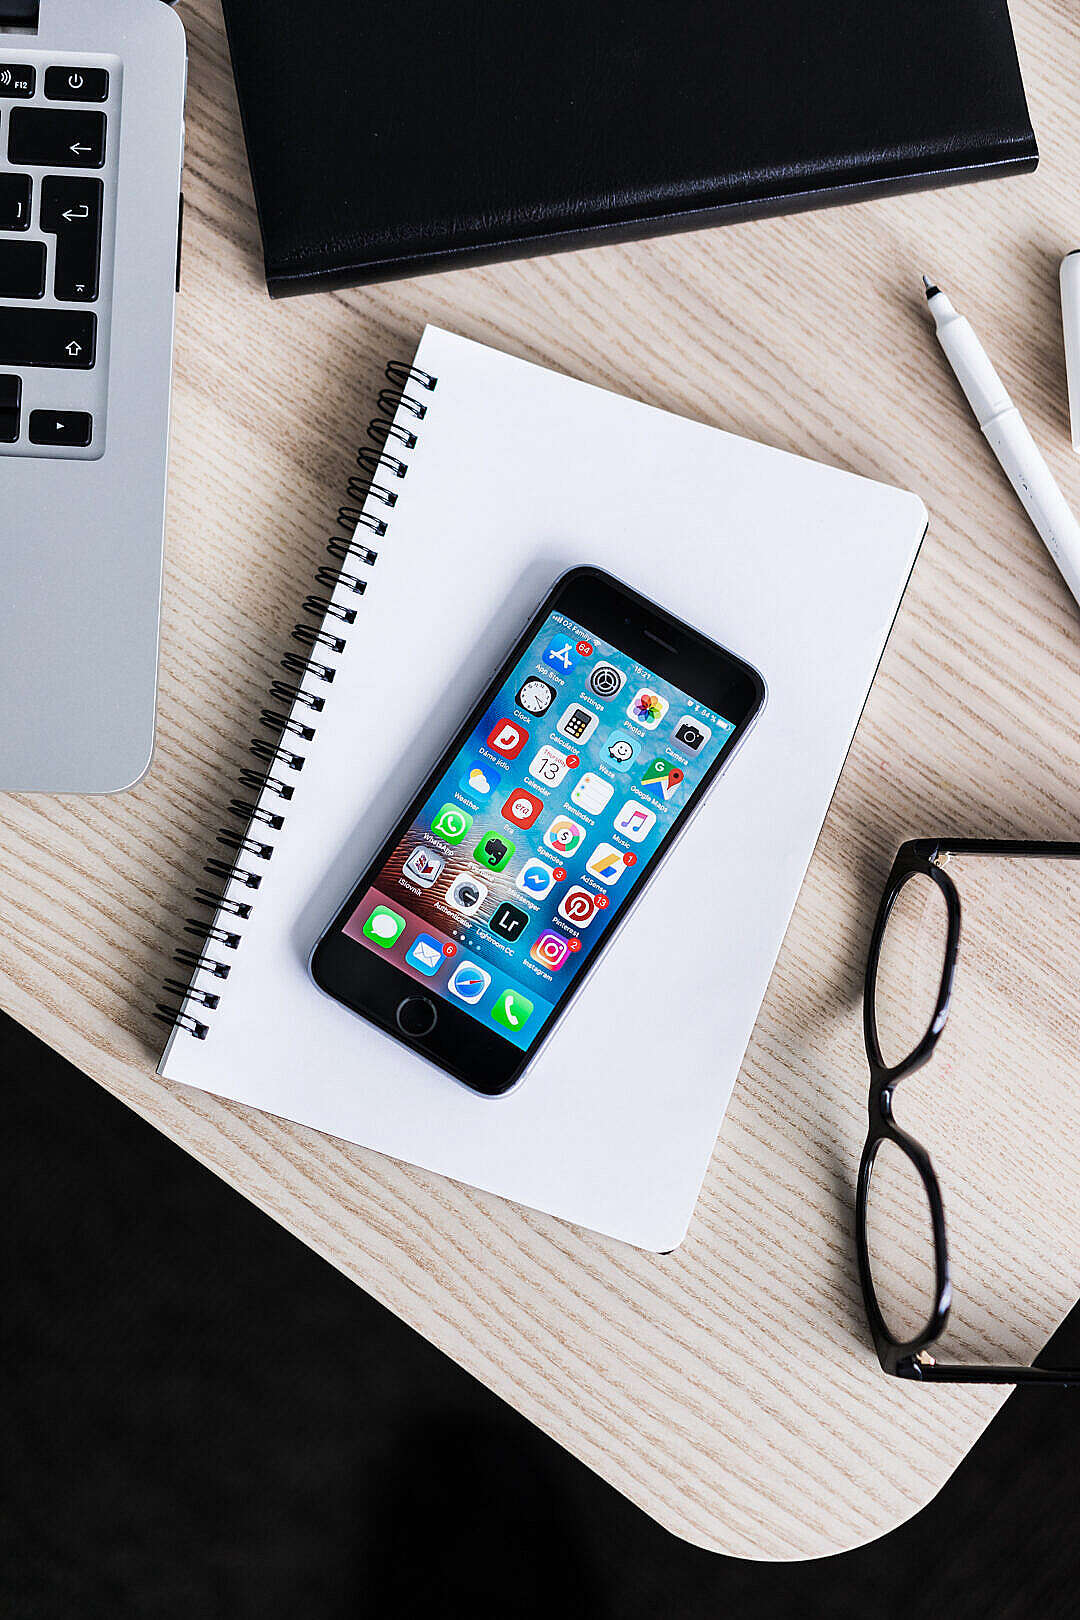 Download iPhone Lying on Notebook and Wooden Desk Mockup FREE Stock Photo